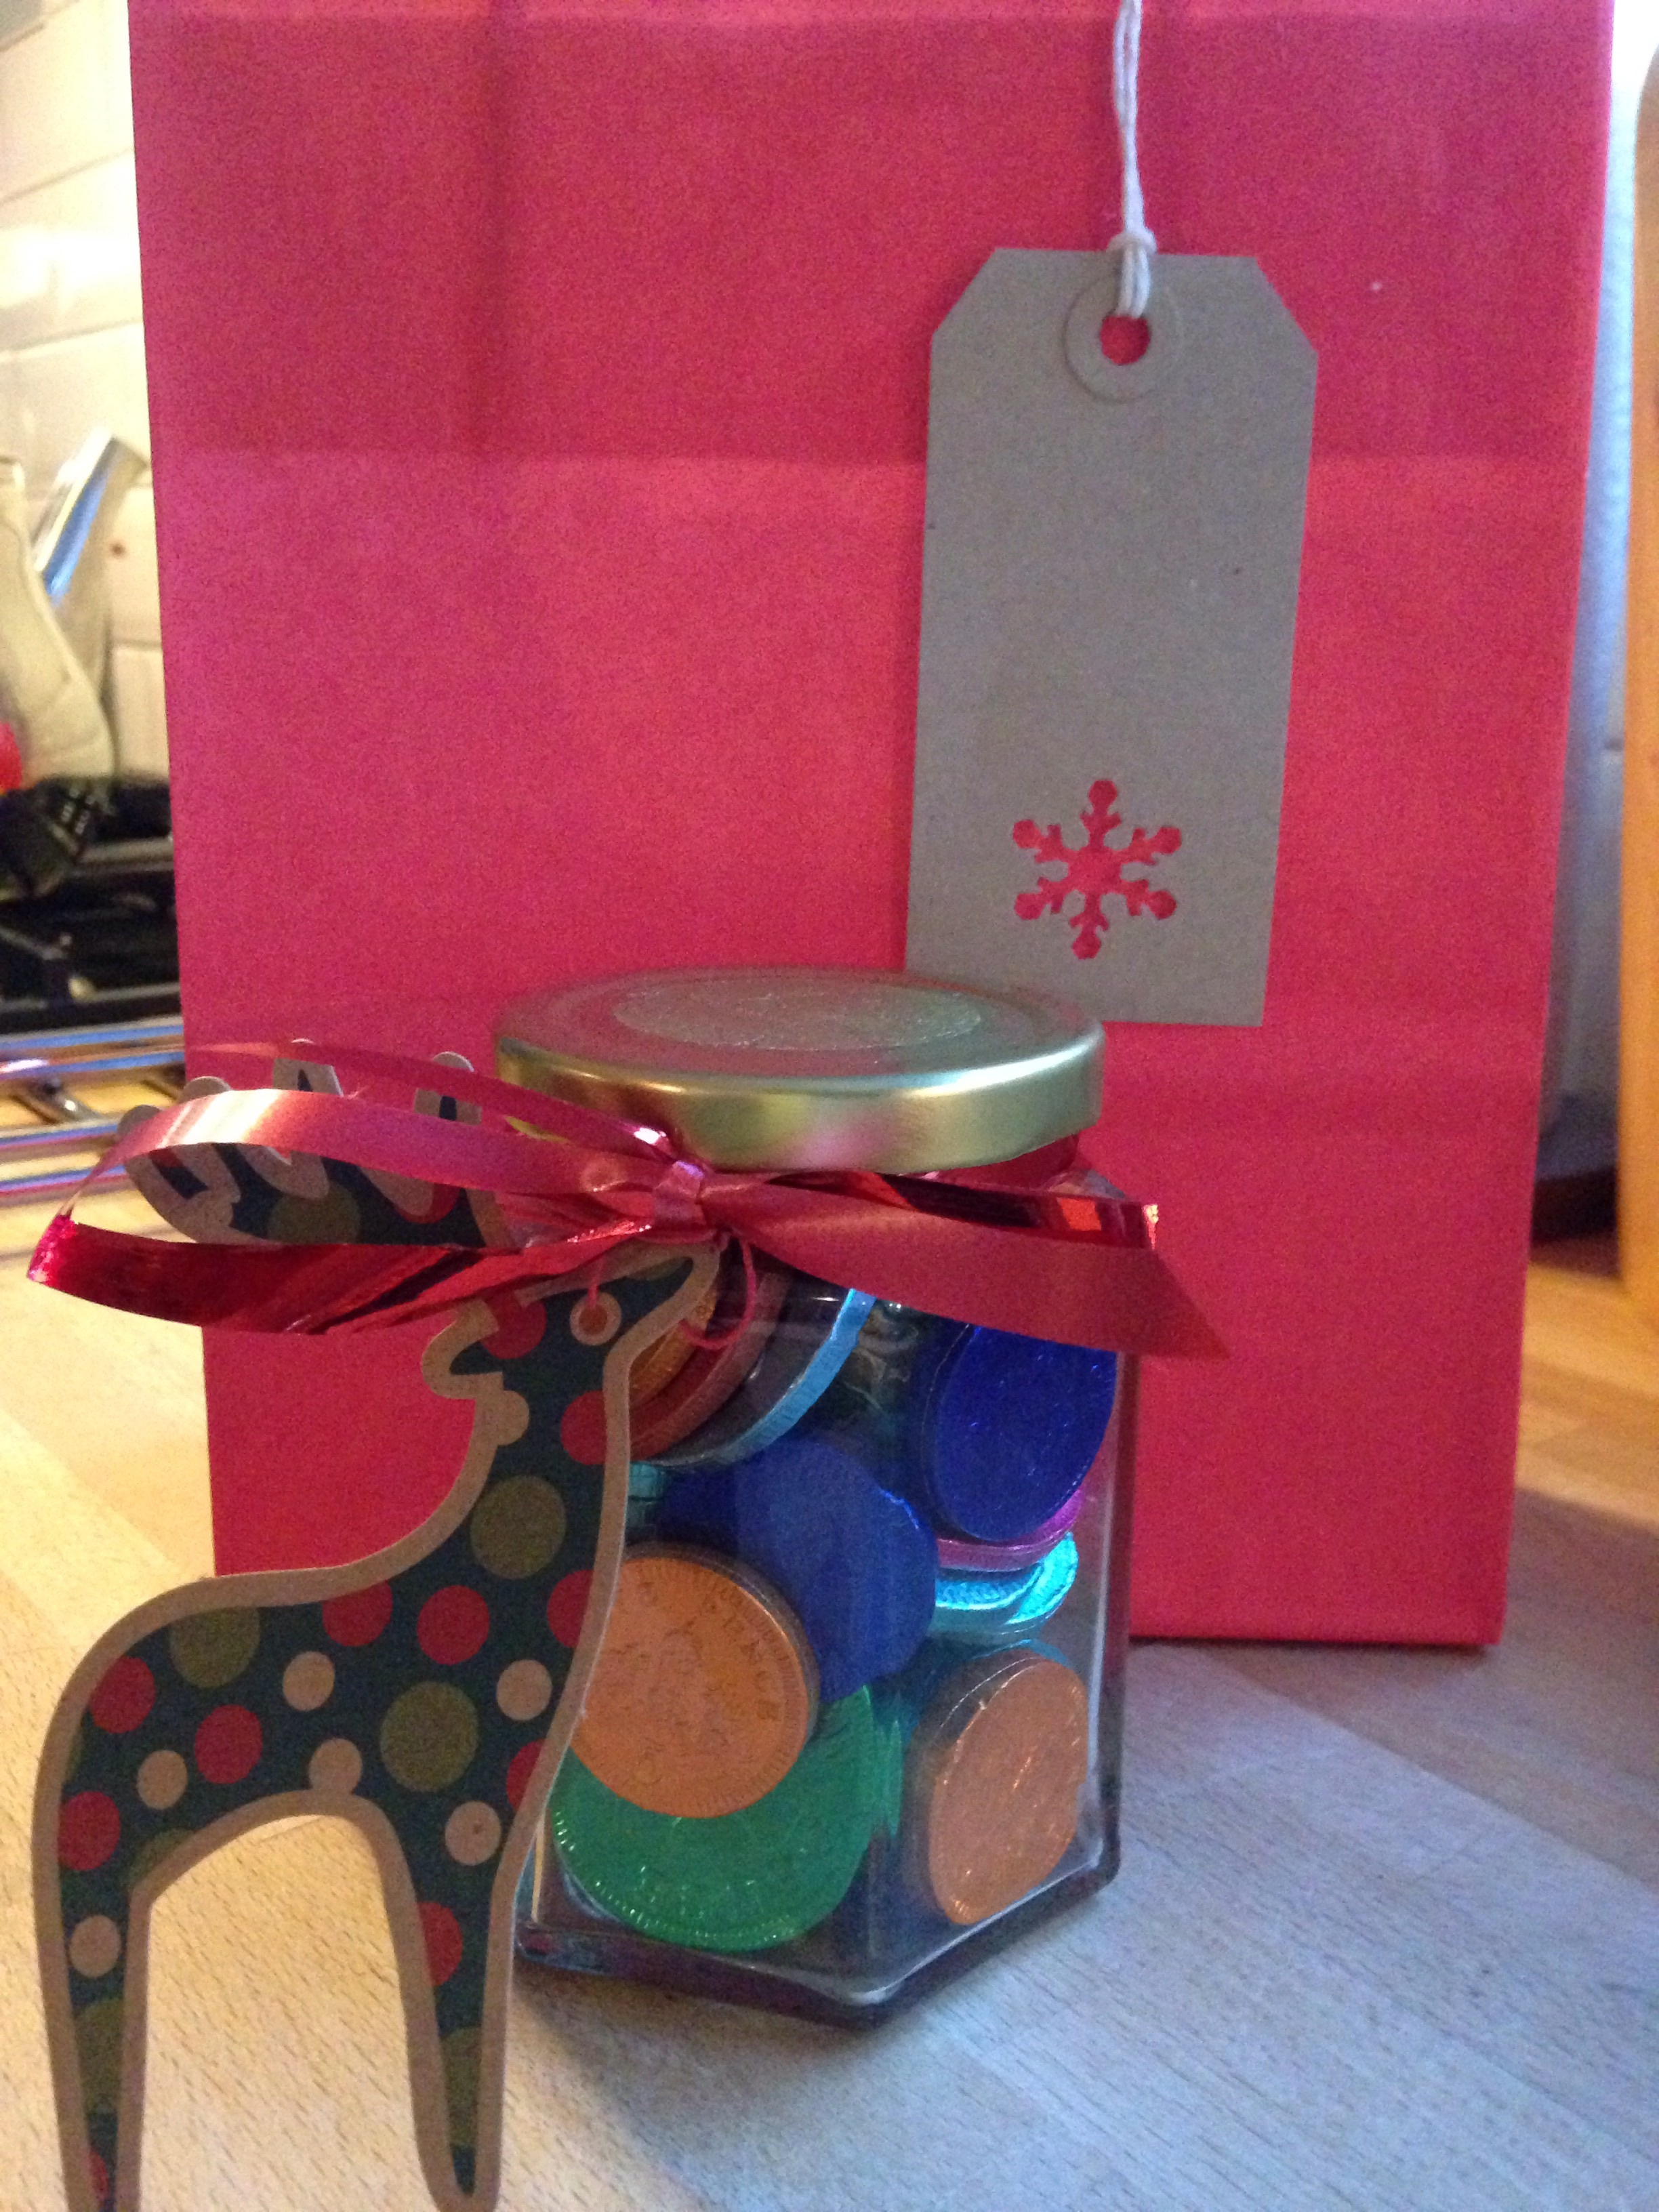 Chocolate coins in a jam jar, tied with ribbon & a Christmas tag.